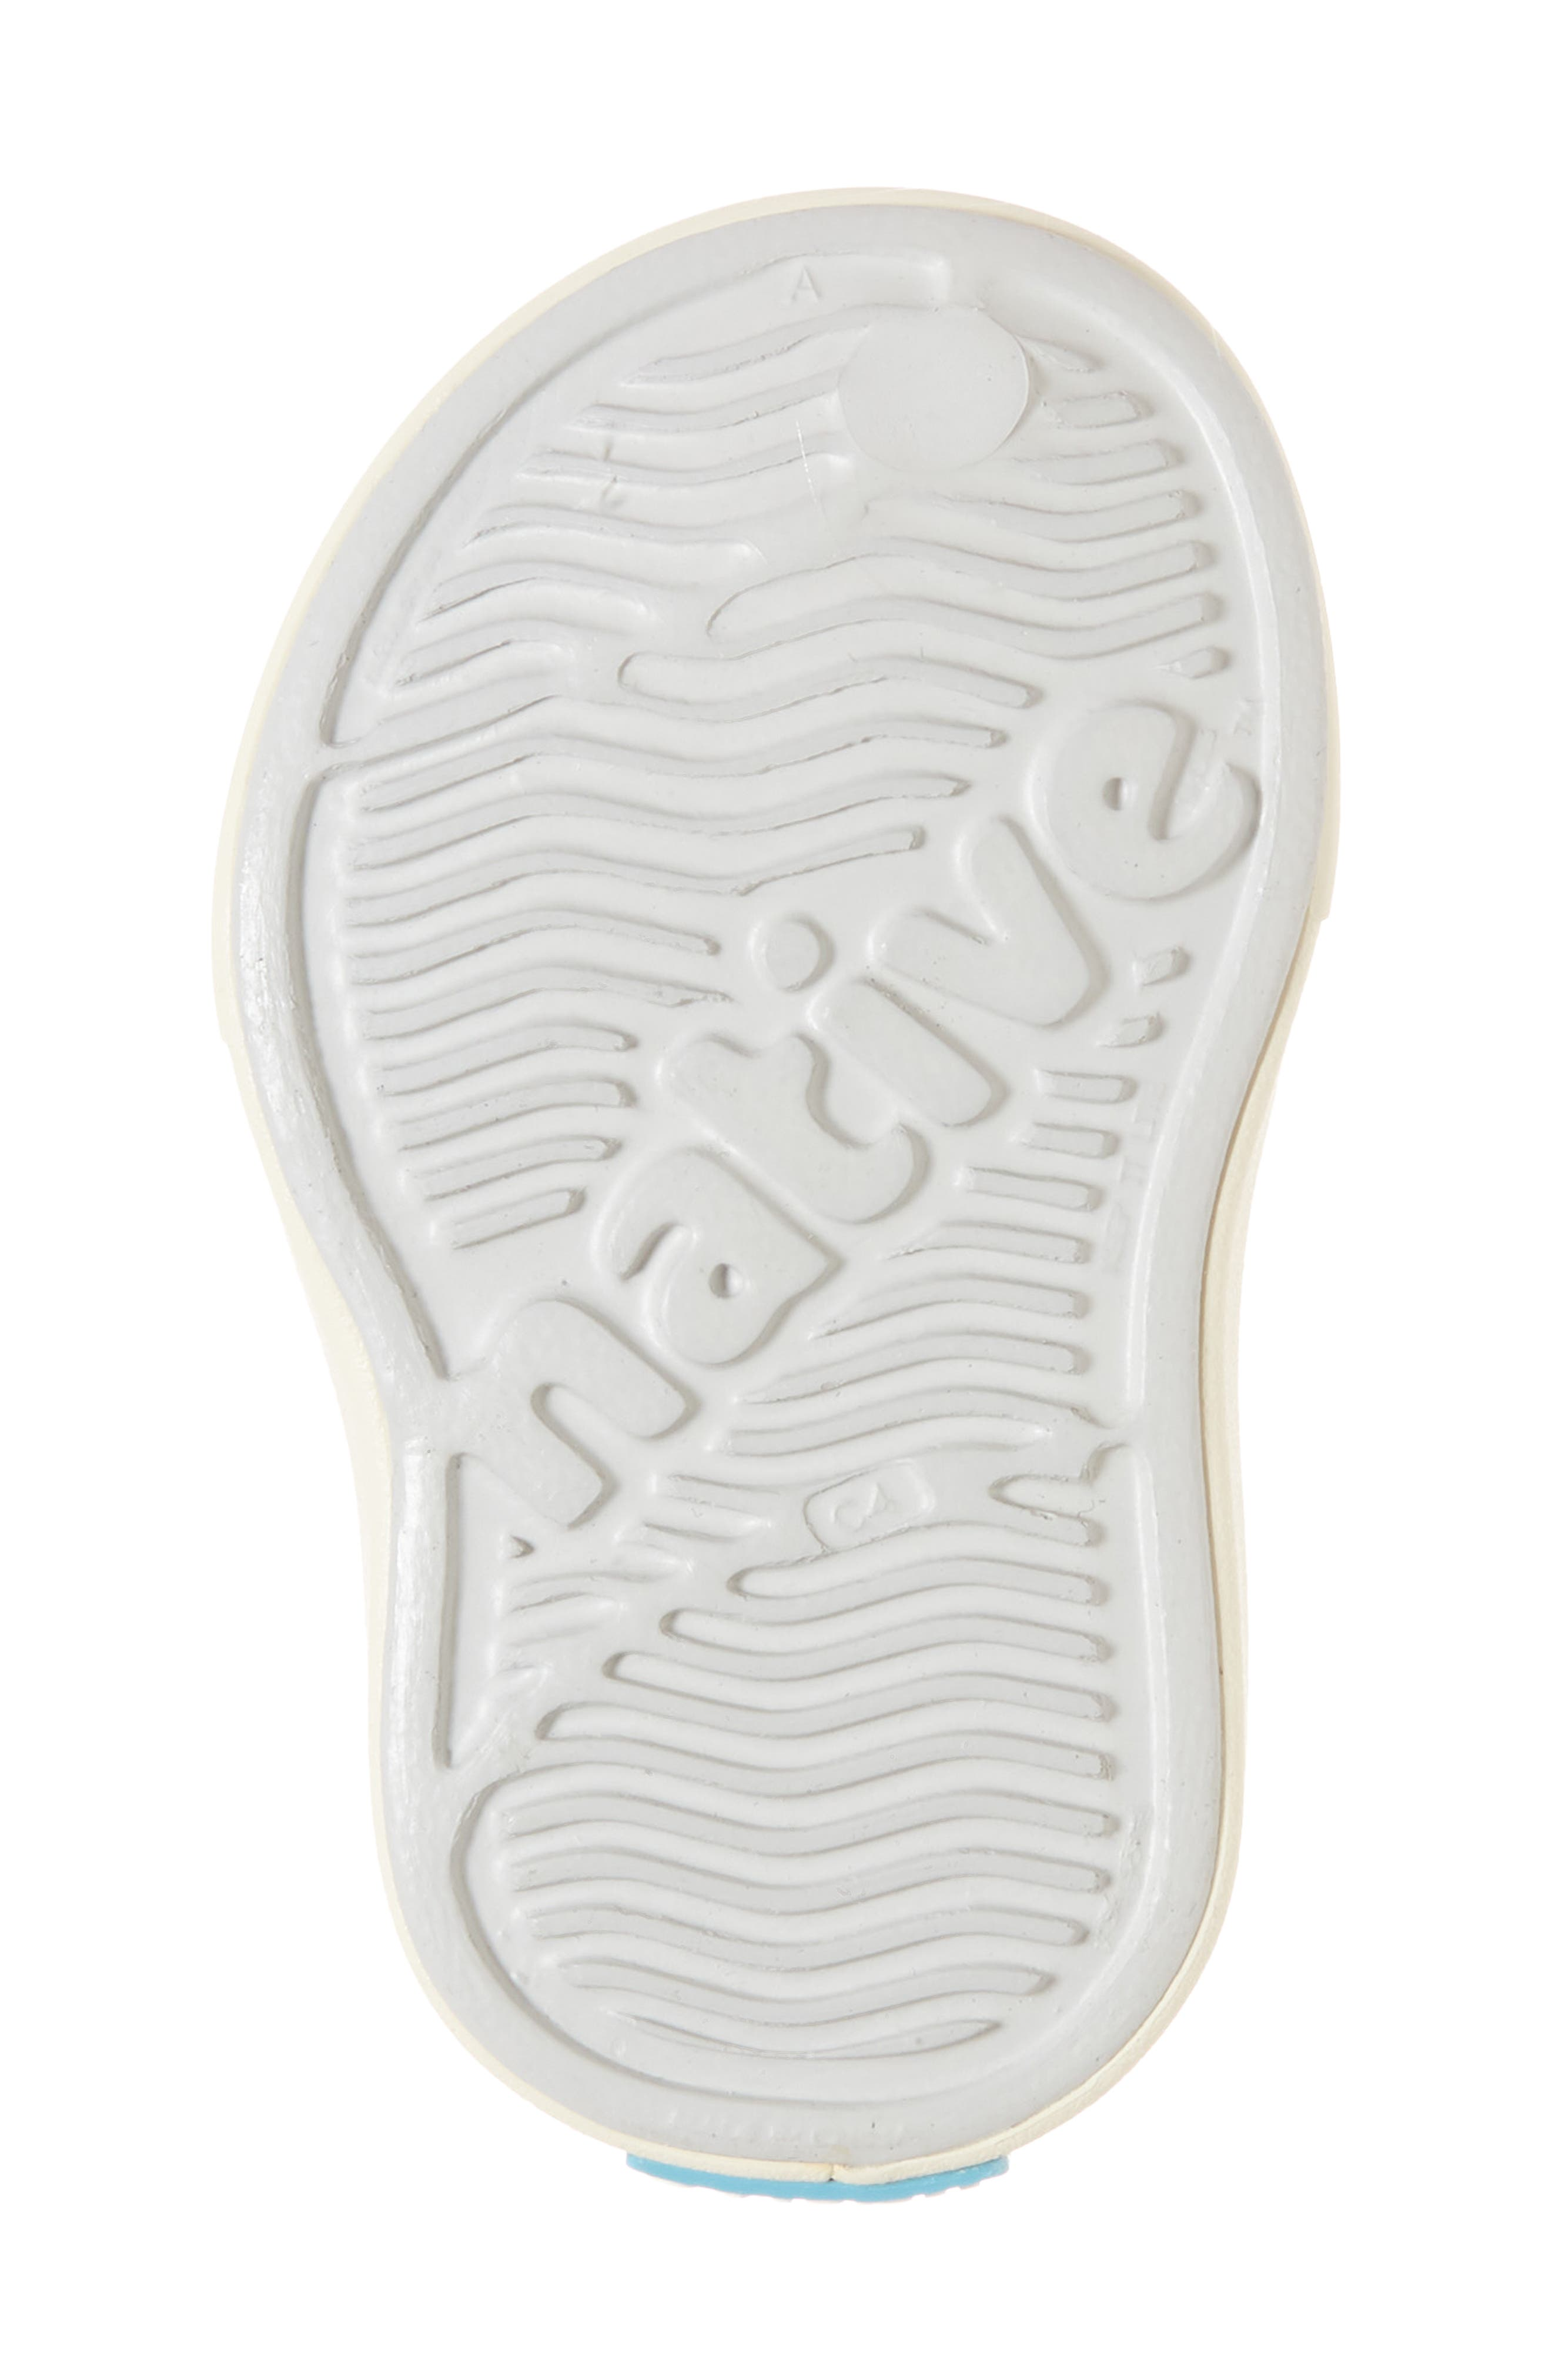 NATIVE SHOES,                             'Miller' Water Friendly Perforated Sneaker,                             Alternate thumbnail 6, color,                             022